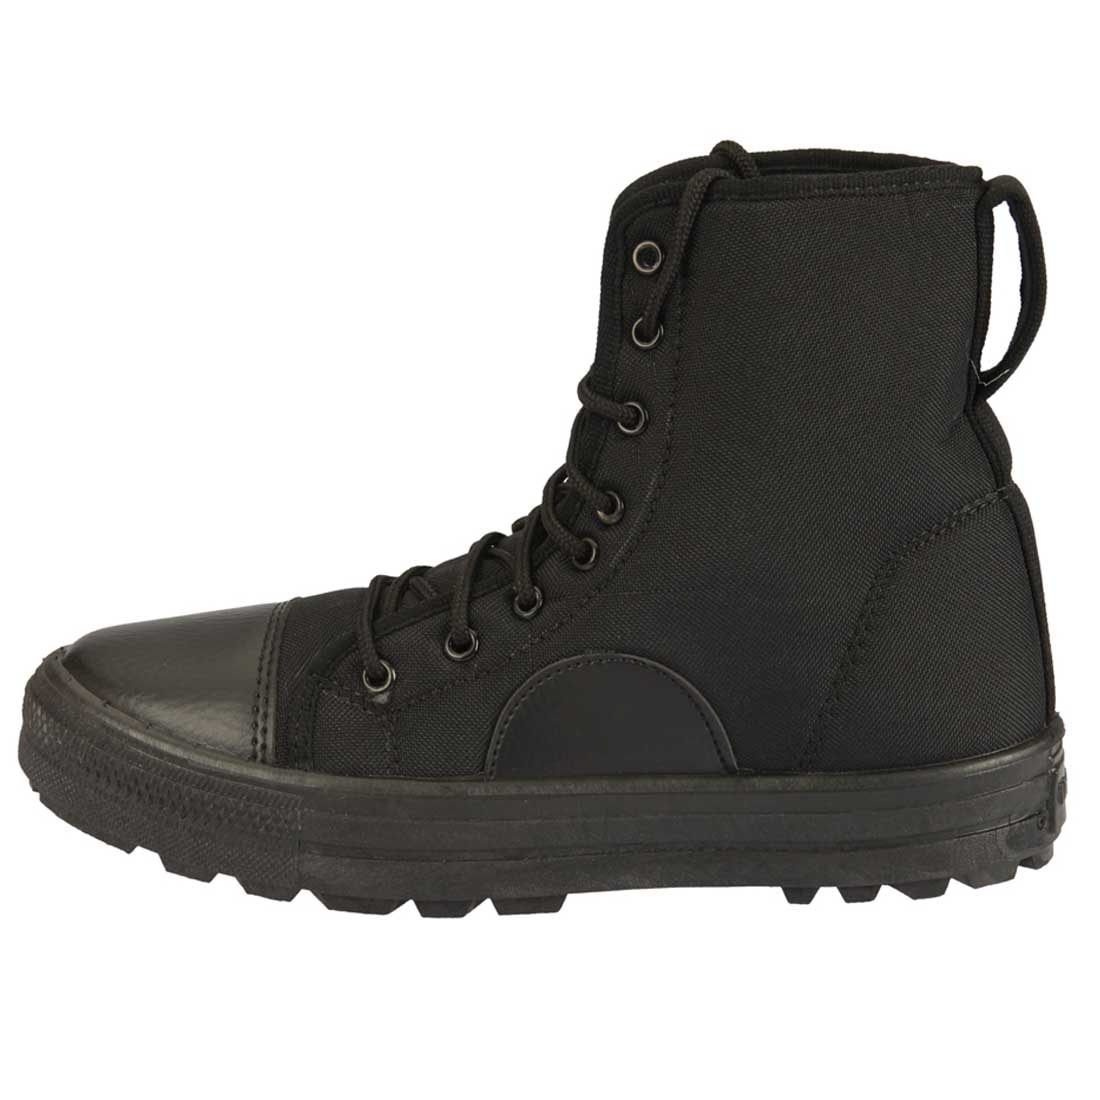 7efe6a1ed7ad Buy Unistar Men Black Boot Online at Low Prices in India - Paytmmall.com